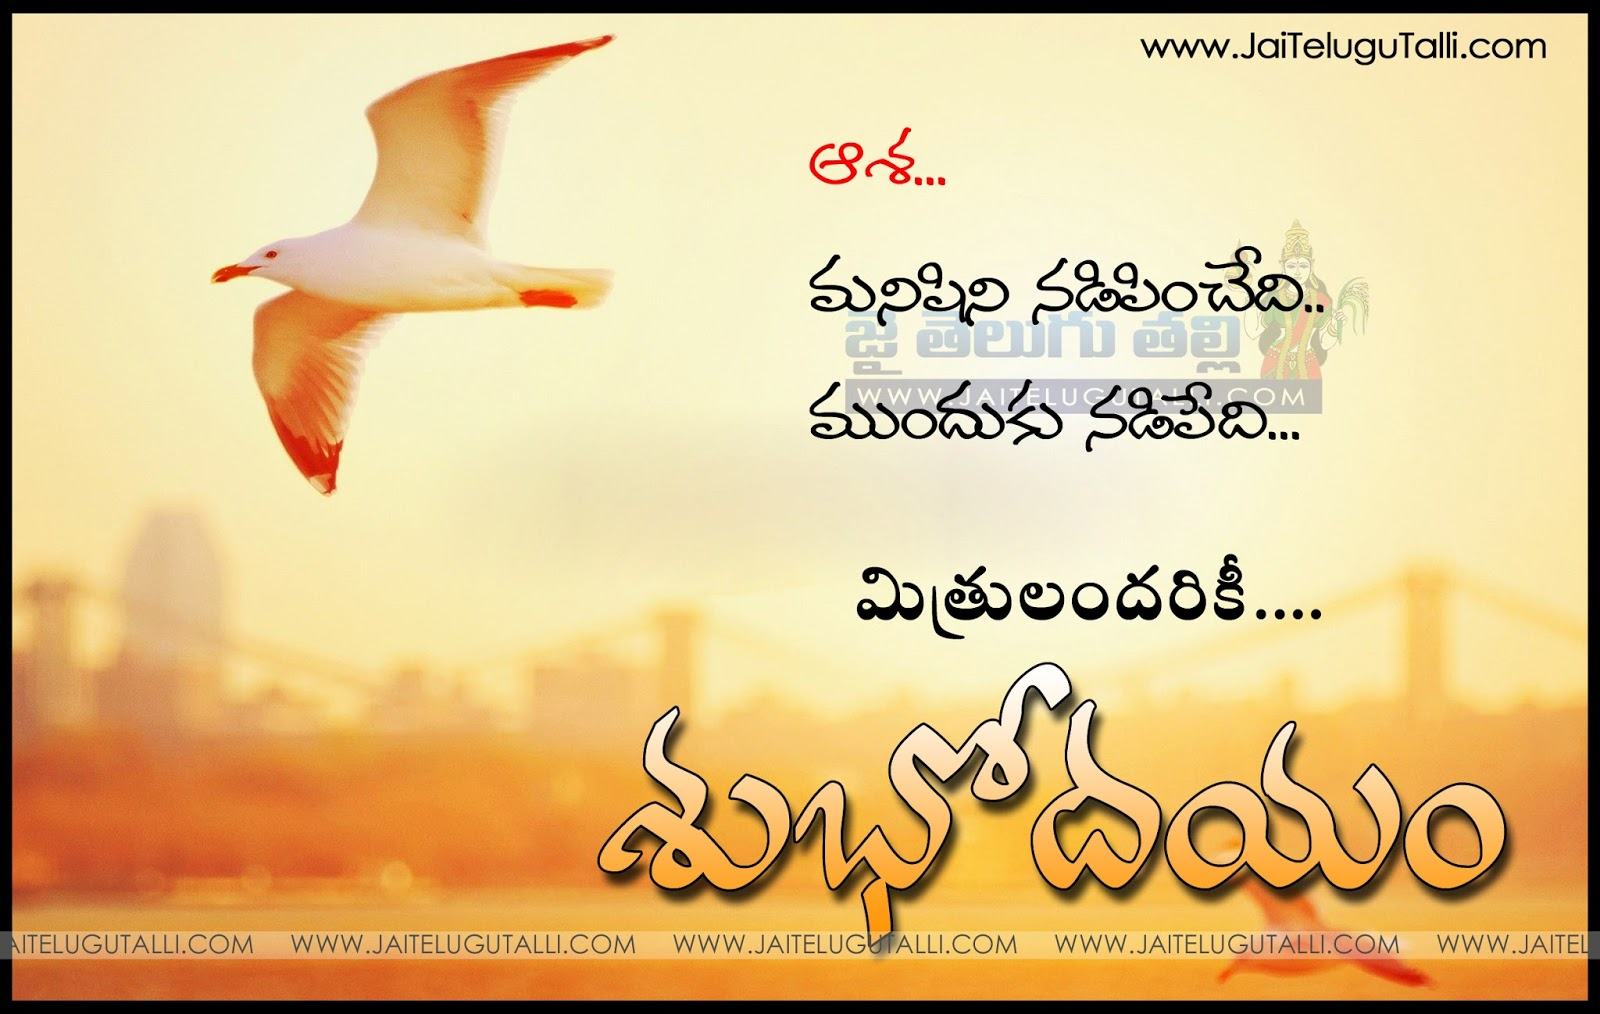 Telugu Quotes Good Morning Wishes In Telugu Hd Wallpapers Life